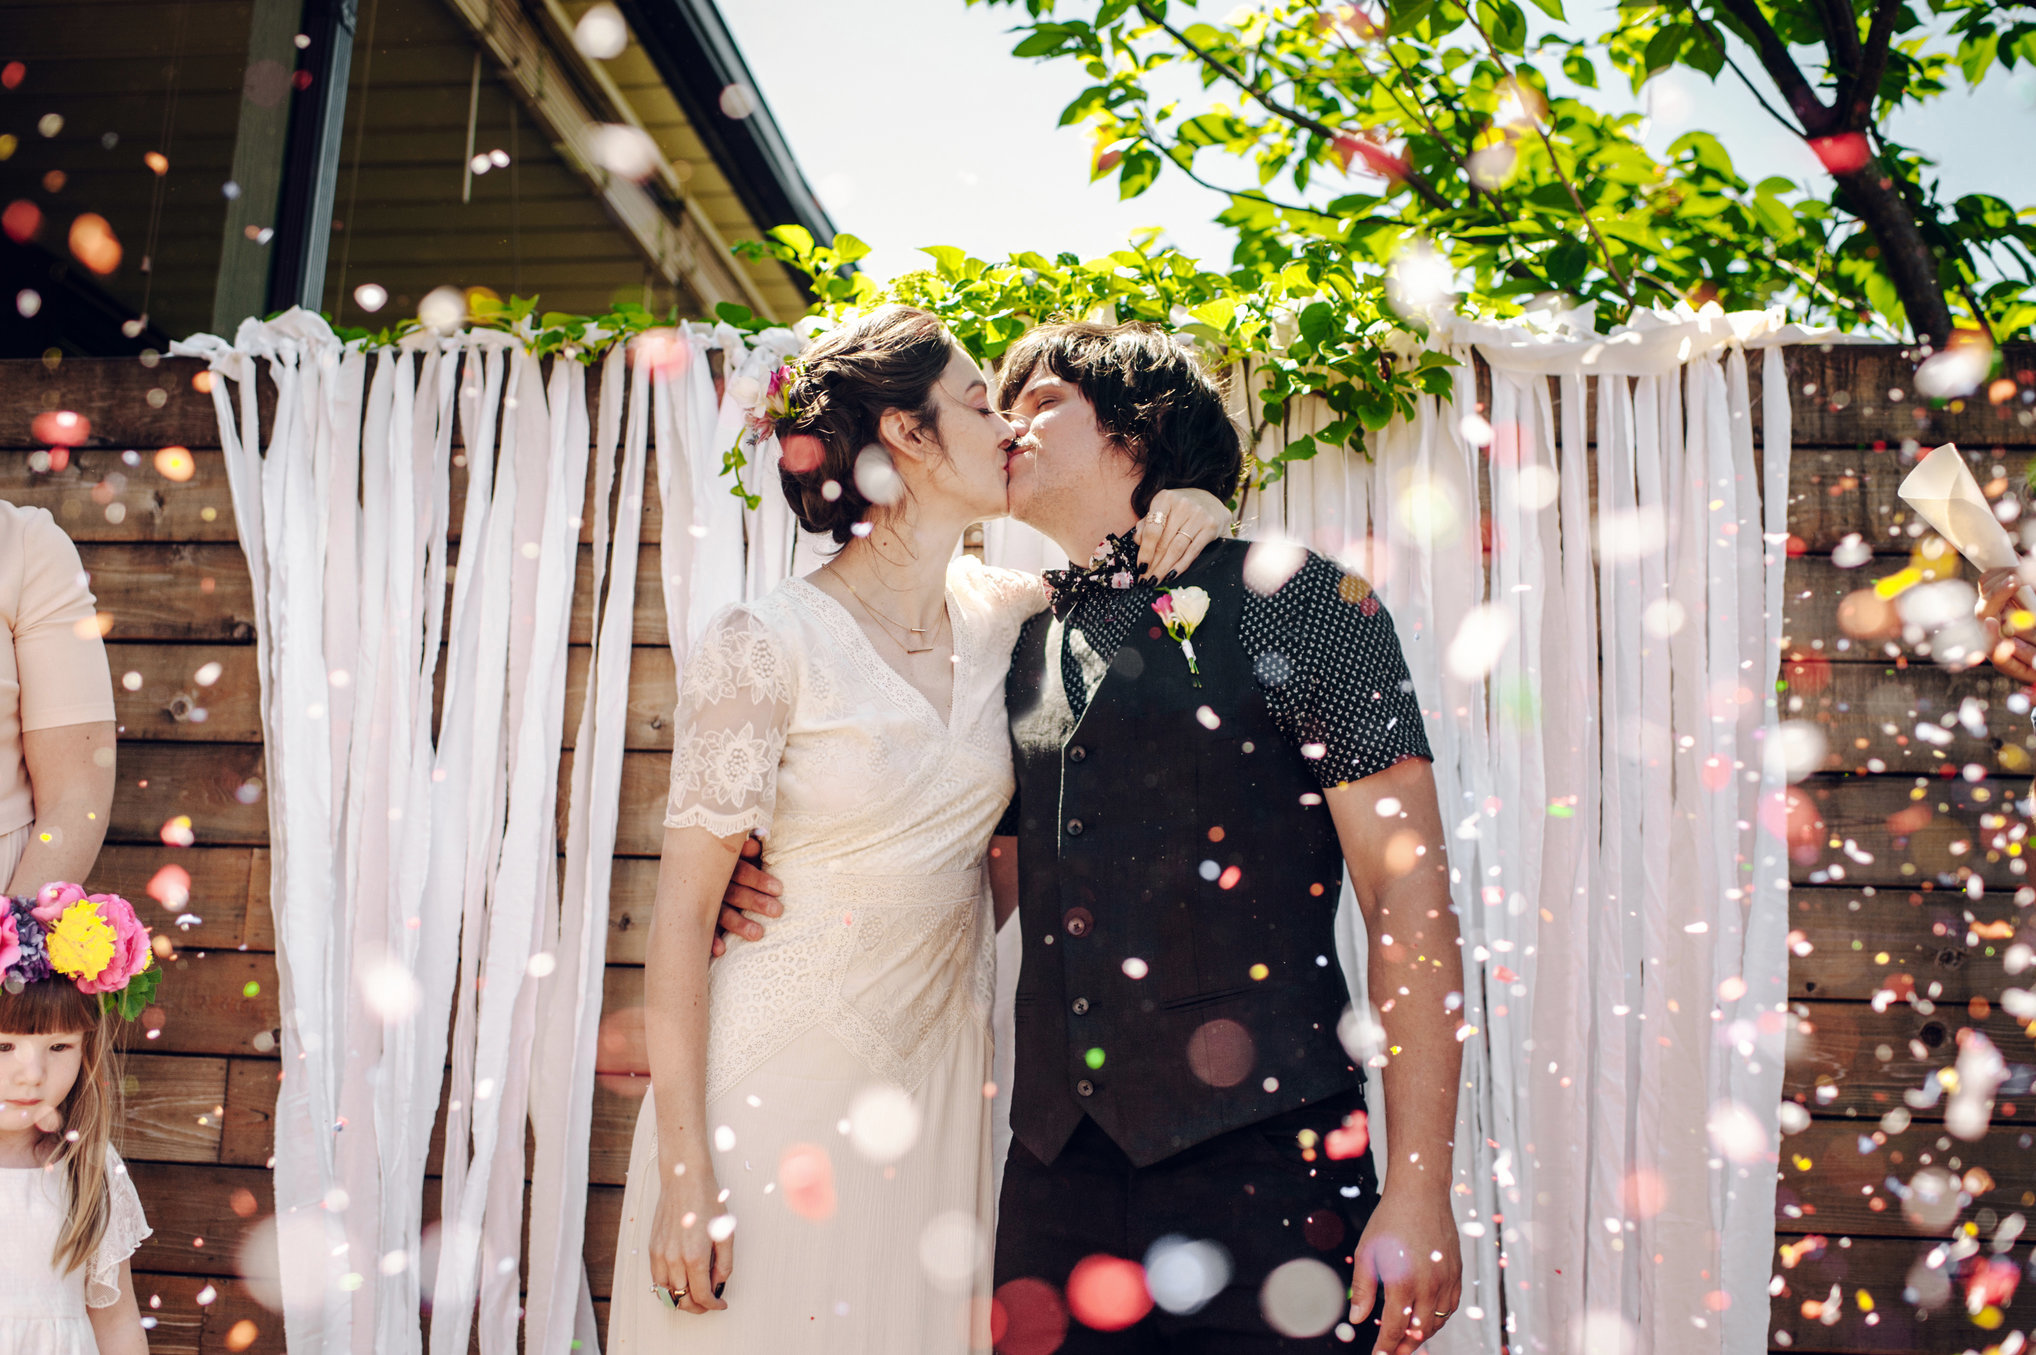 Magical Outdoor Wedding Photos of the Happy Couple